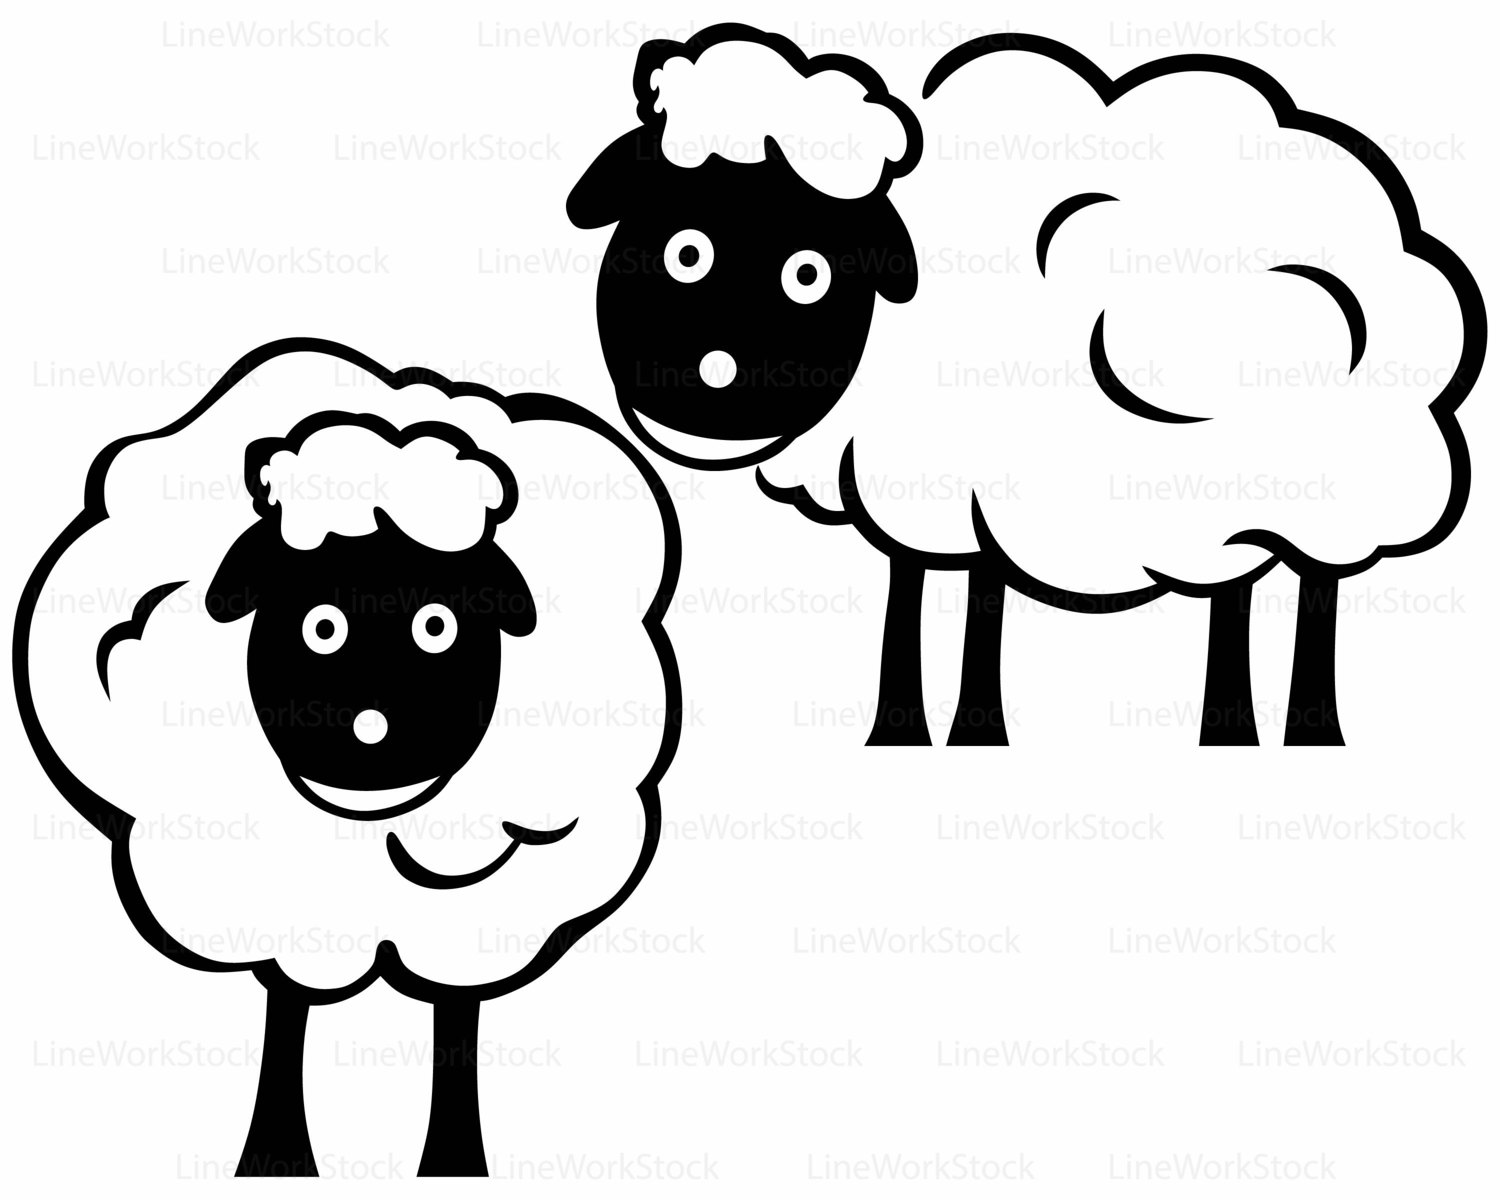 lamb silhouette clip art at getdrawings com free for personal use rh getdrawings com clip art sheep and goats clipart sheets